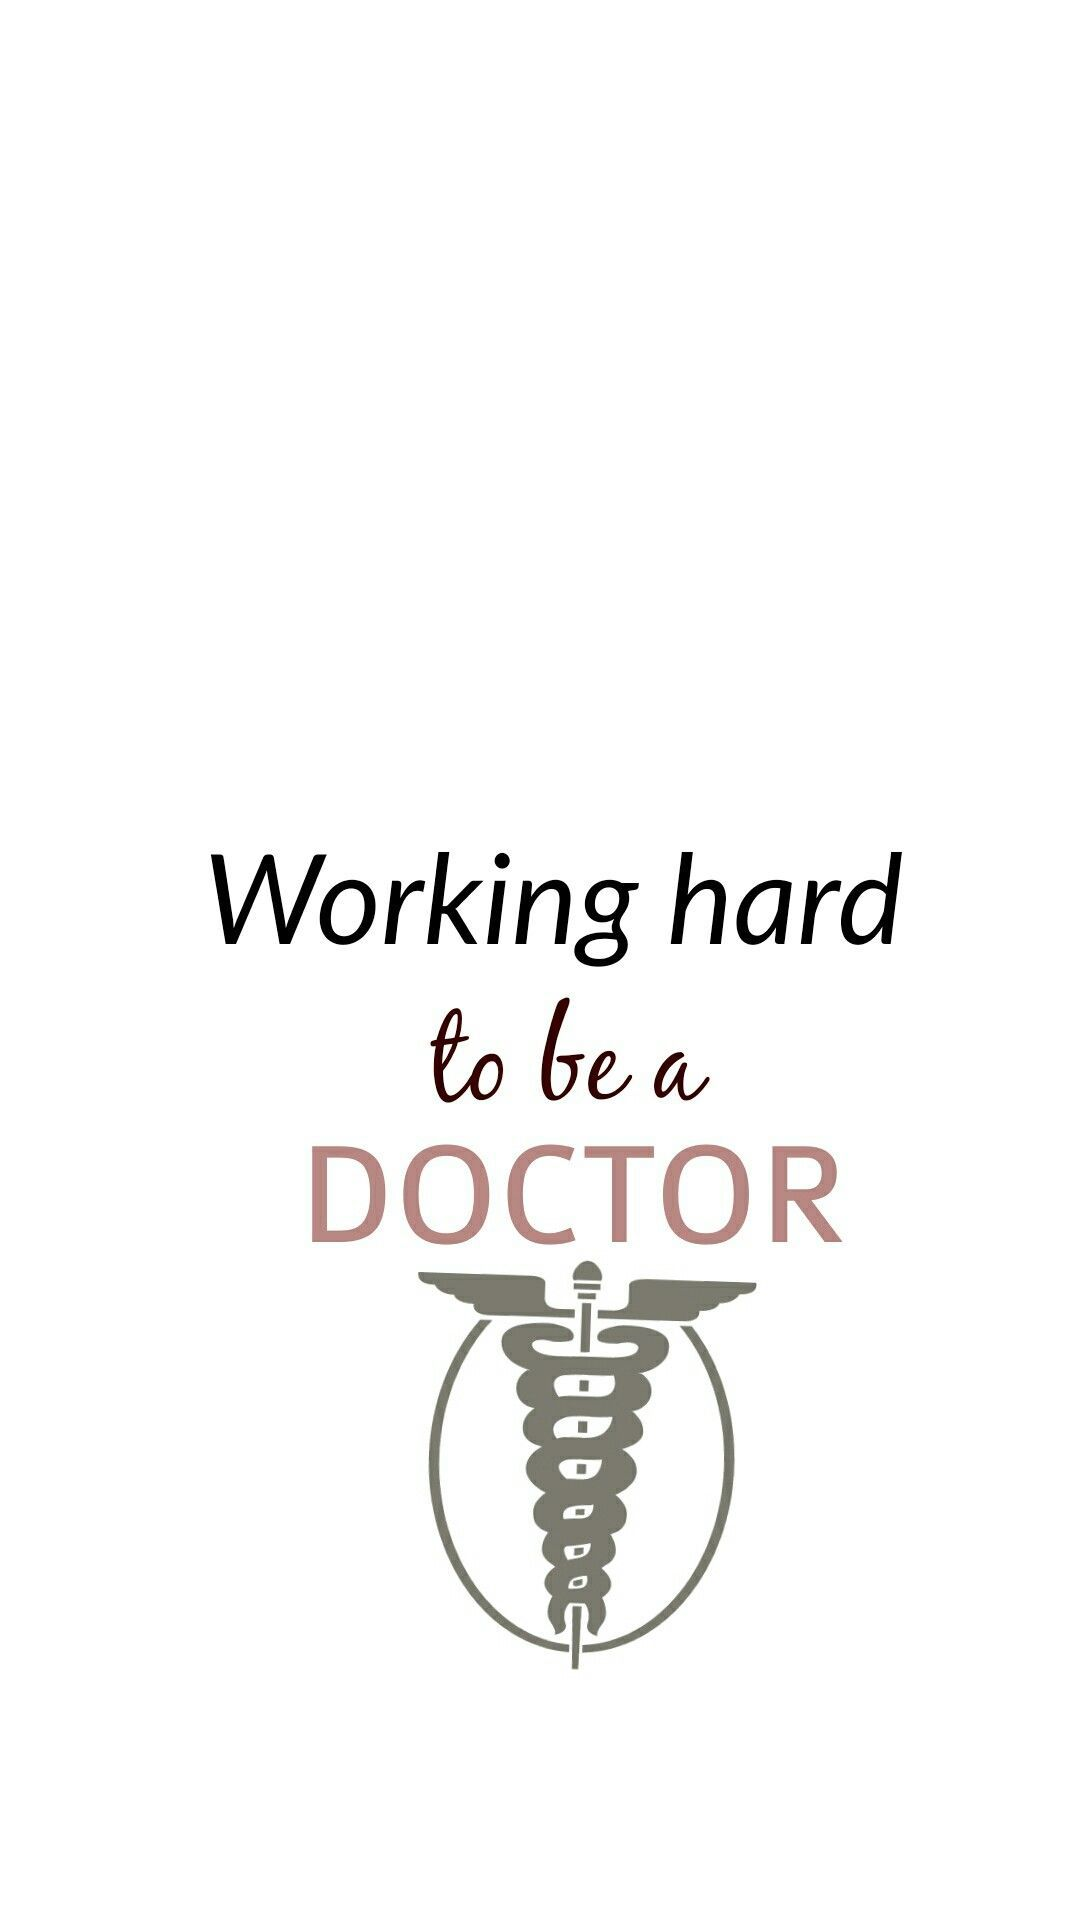 Top Quote Wallpaper Doctor 83 On Quote Wallpaper App With Quote